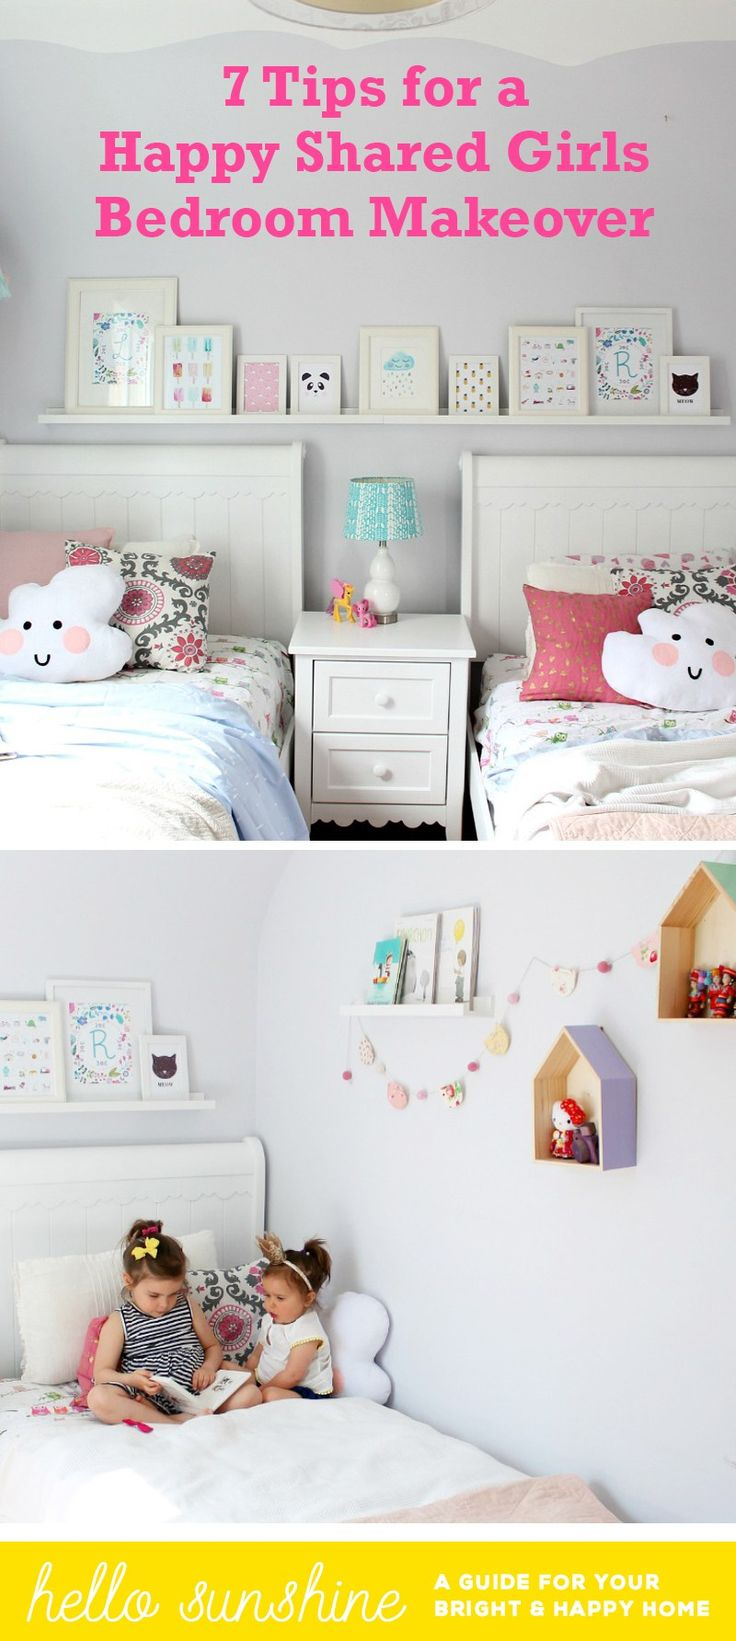 7 tips for a happy shared girls bedroom